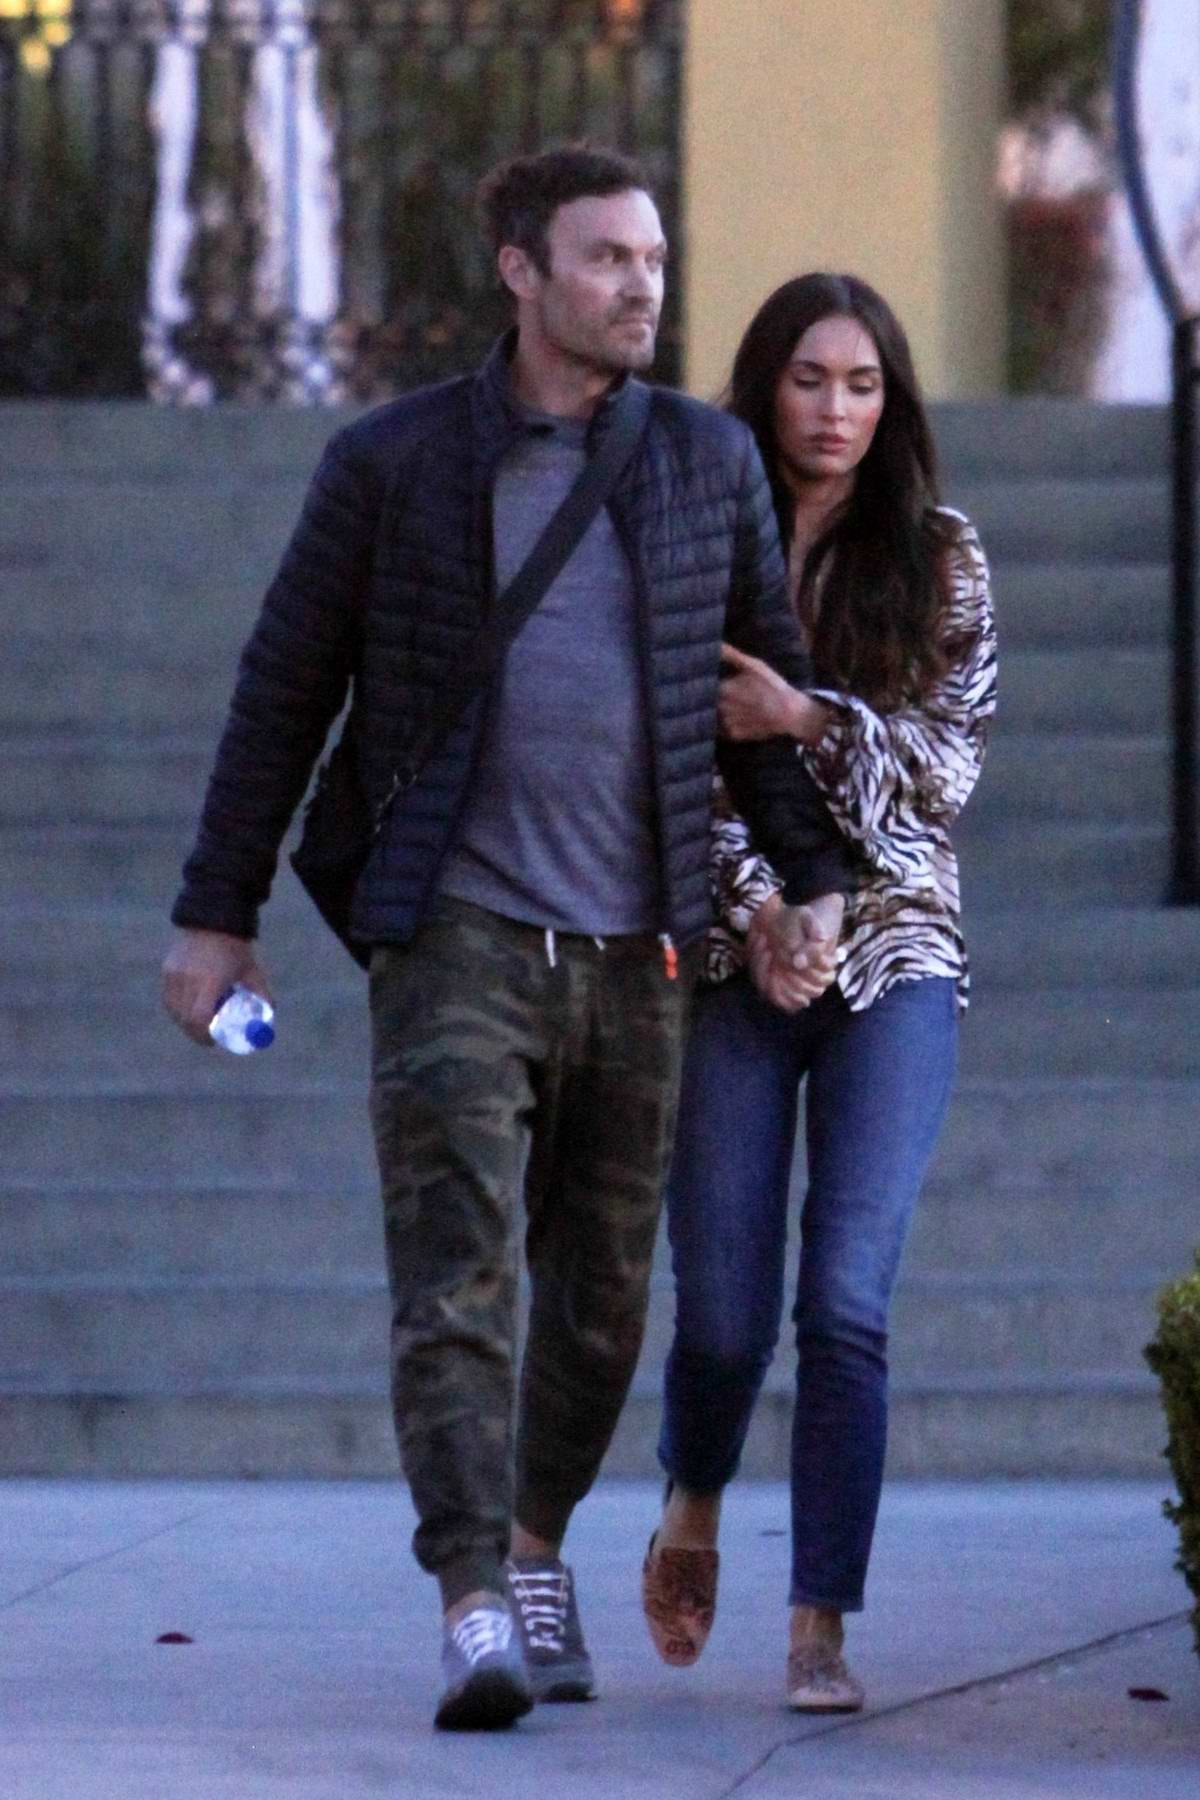 Megan Fox hold hands with Brian Austin Green hugging his arm while on a romantic date night in Los Angeles